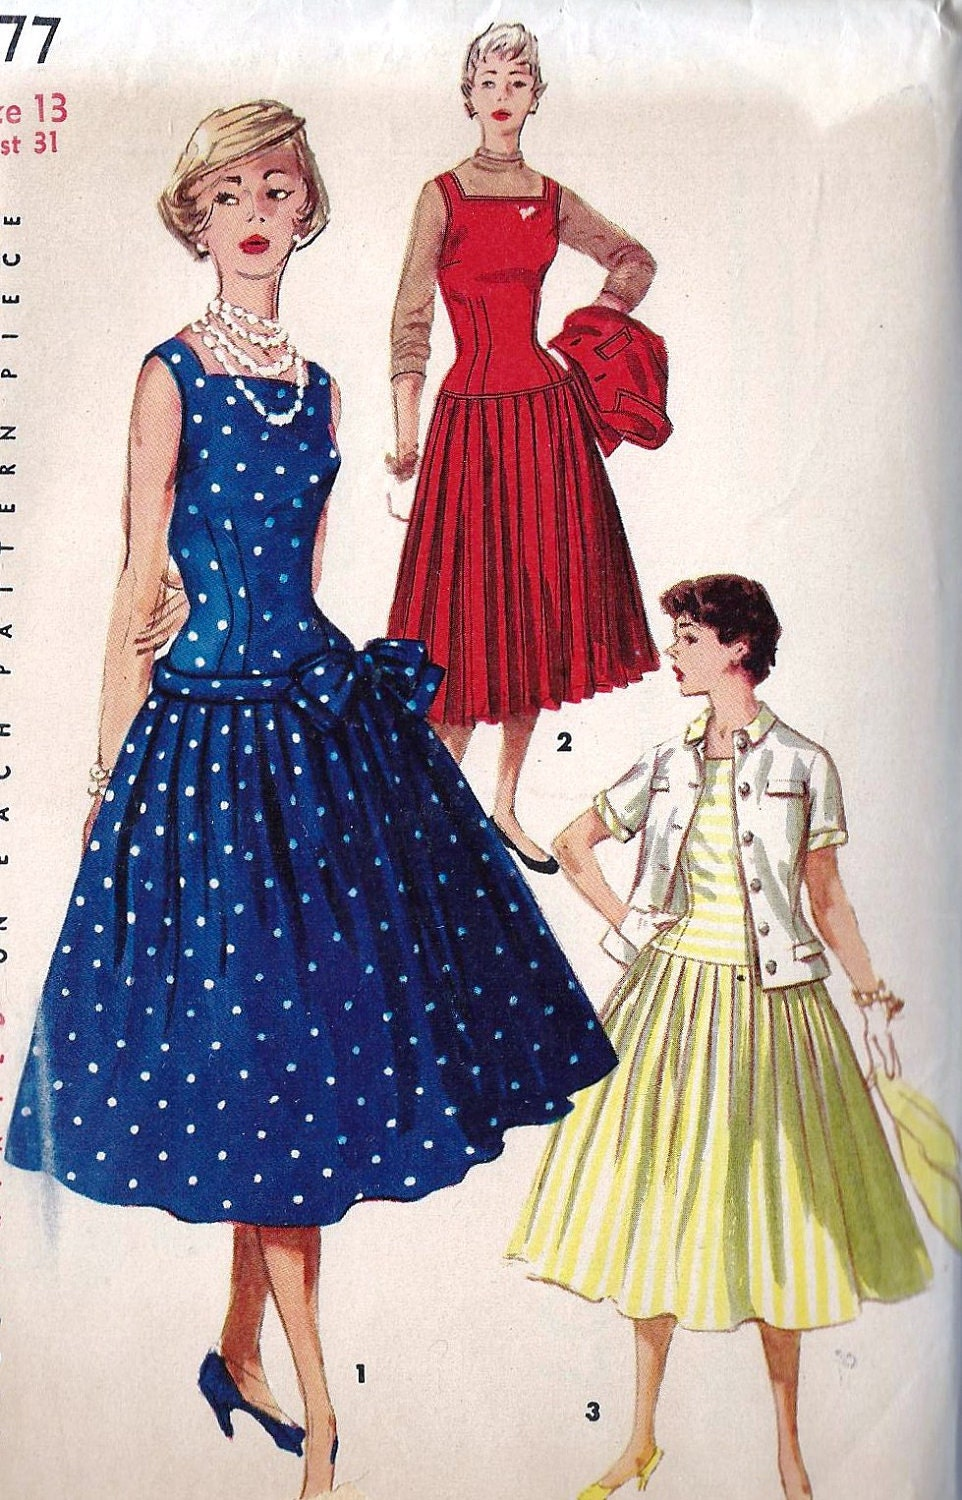 "1950s Junior Misses Summer Party Dress, Jumper and Jacket Vintage Sewing Pattern, Drop Waist, Pleated Skirt Simplicity 1077 bust 31"" uncut"